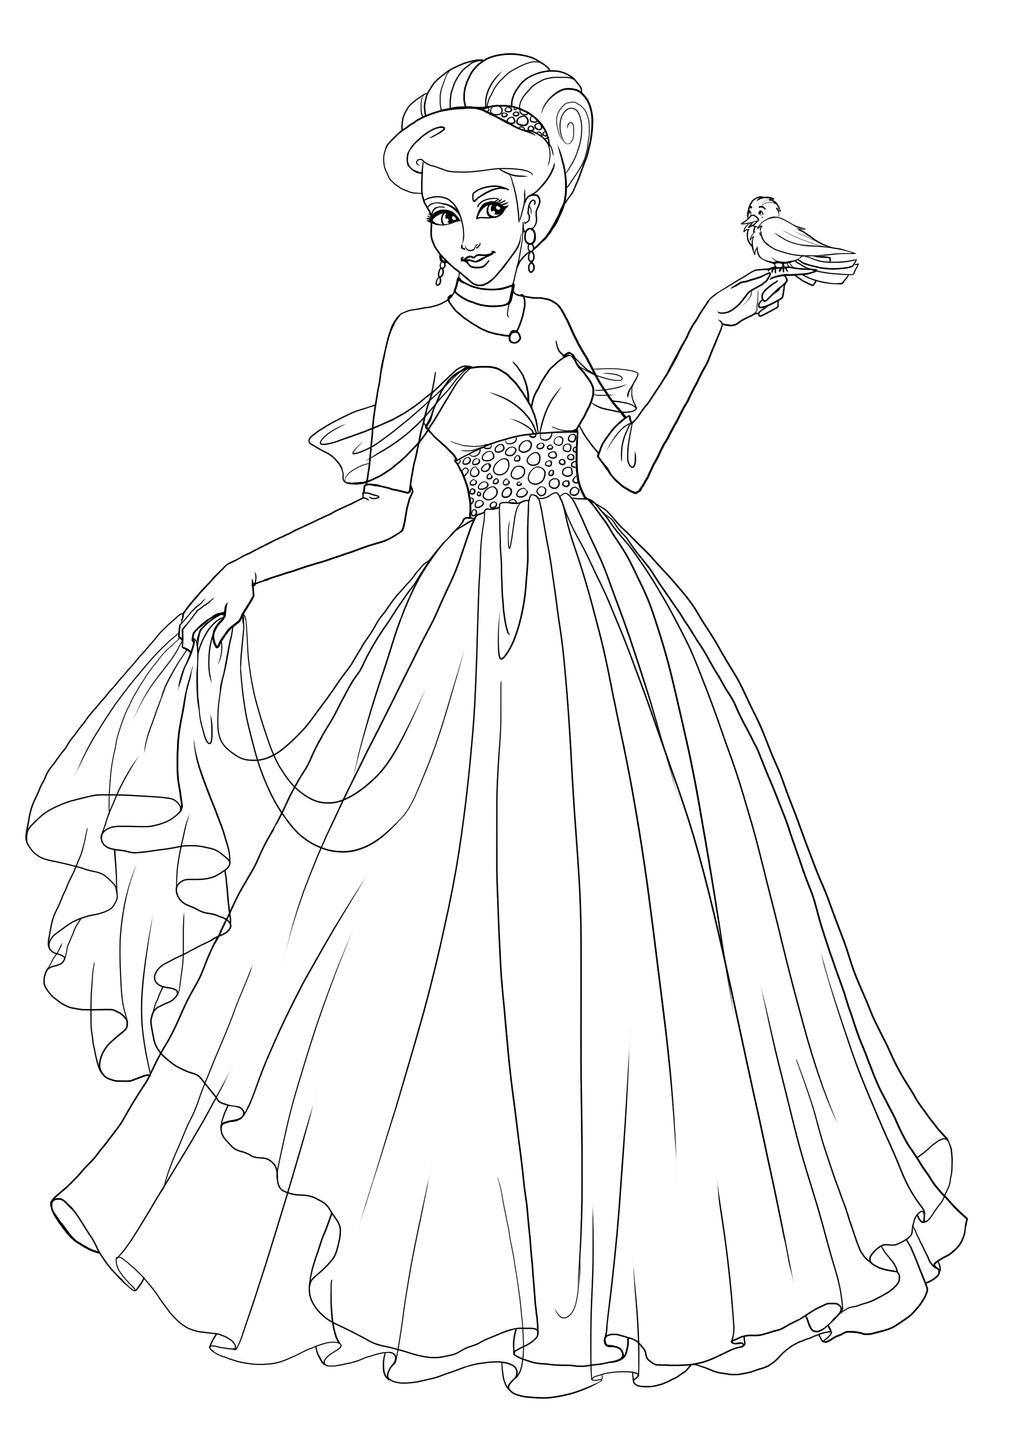 Line Art Disney : Commission princess saria lineart by paola tosca on